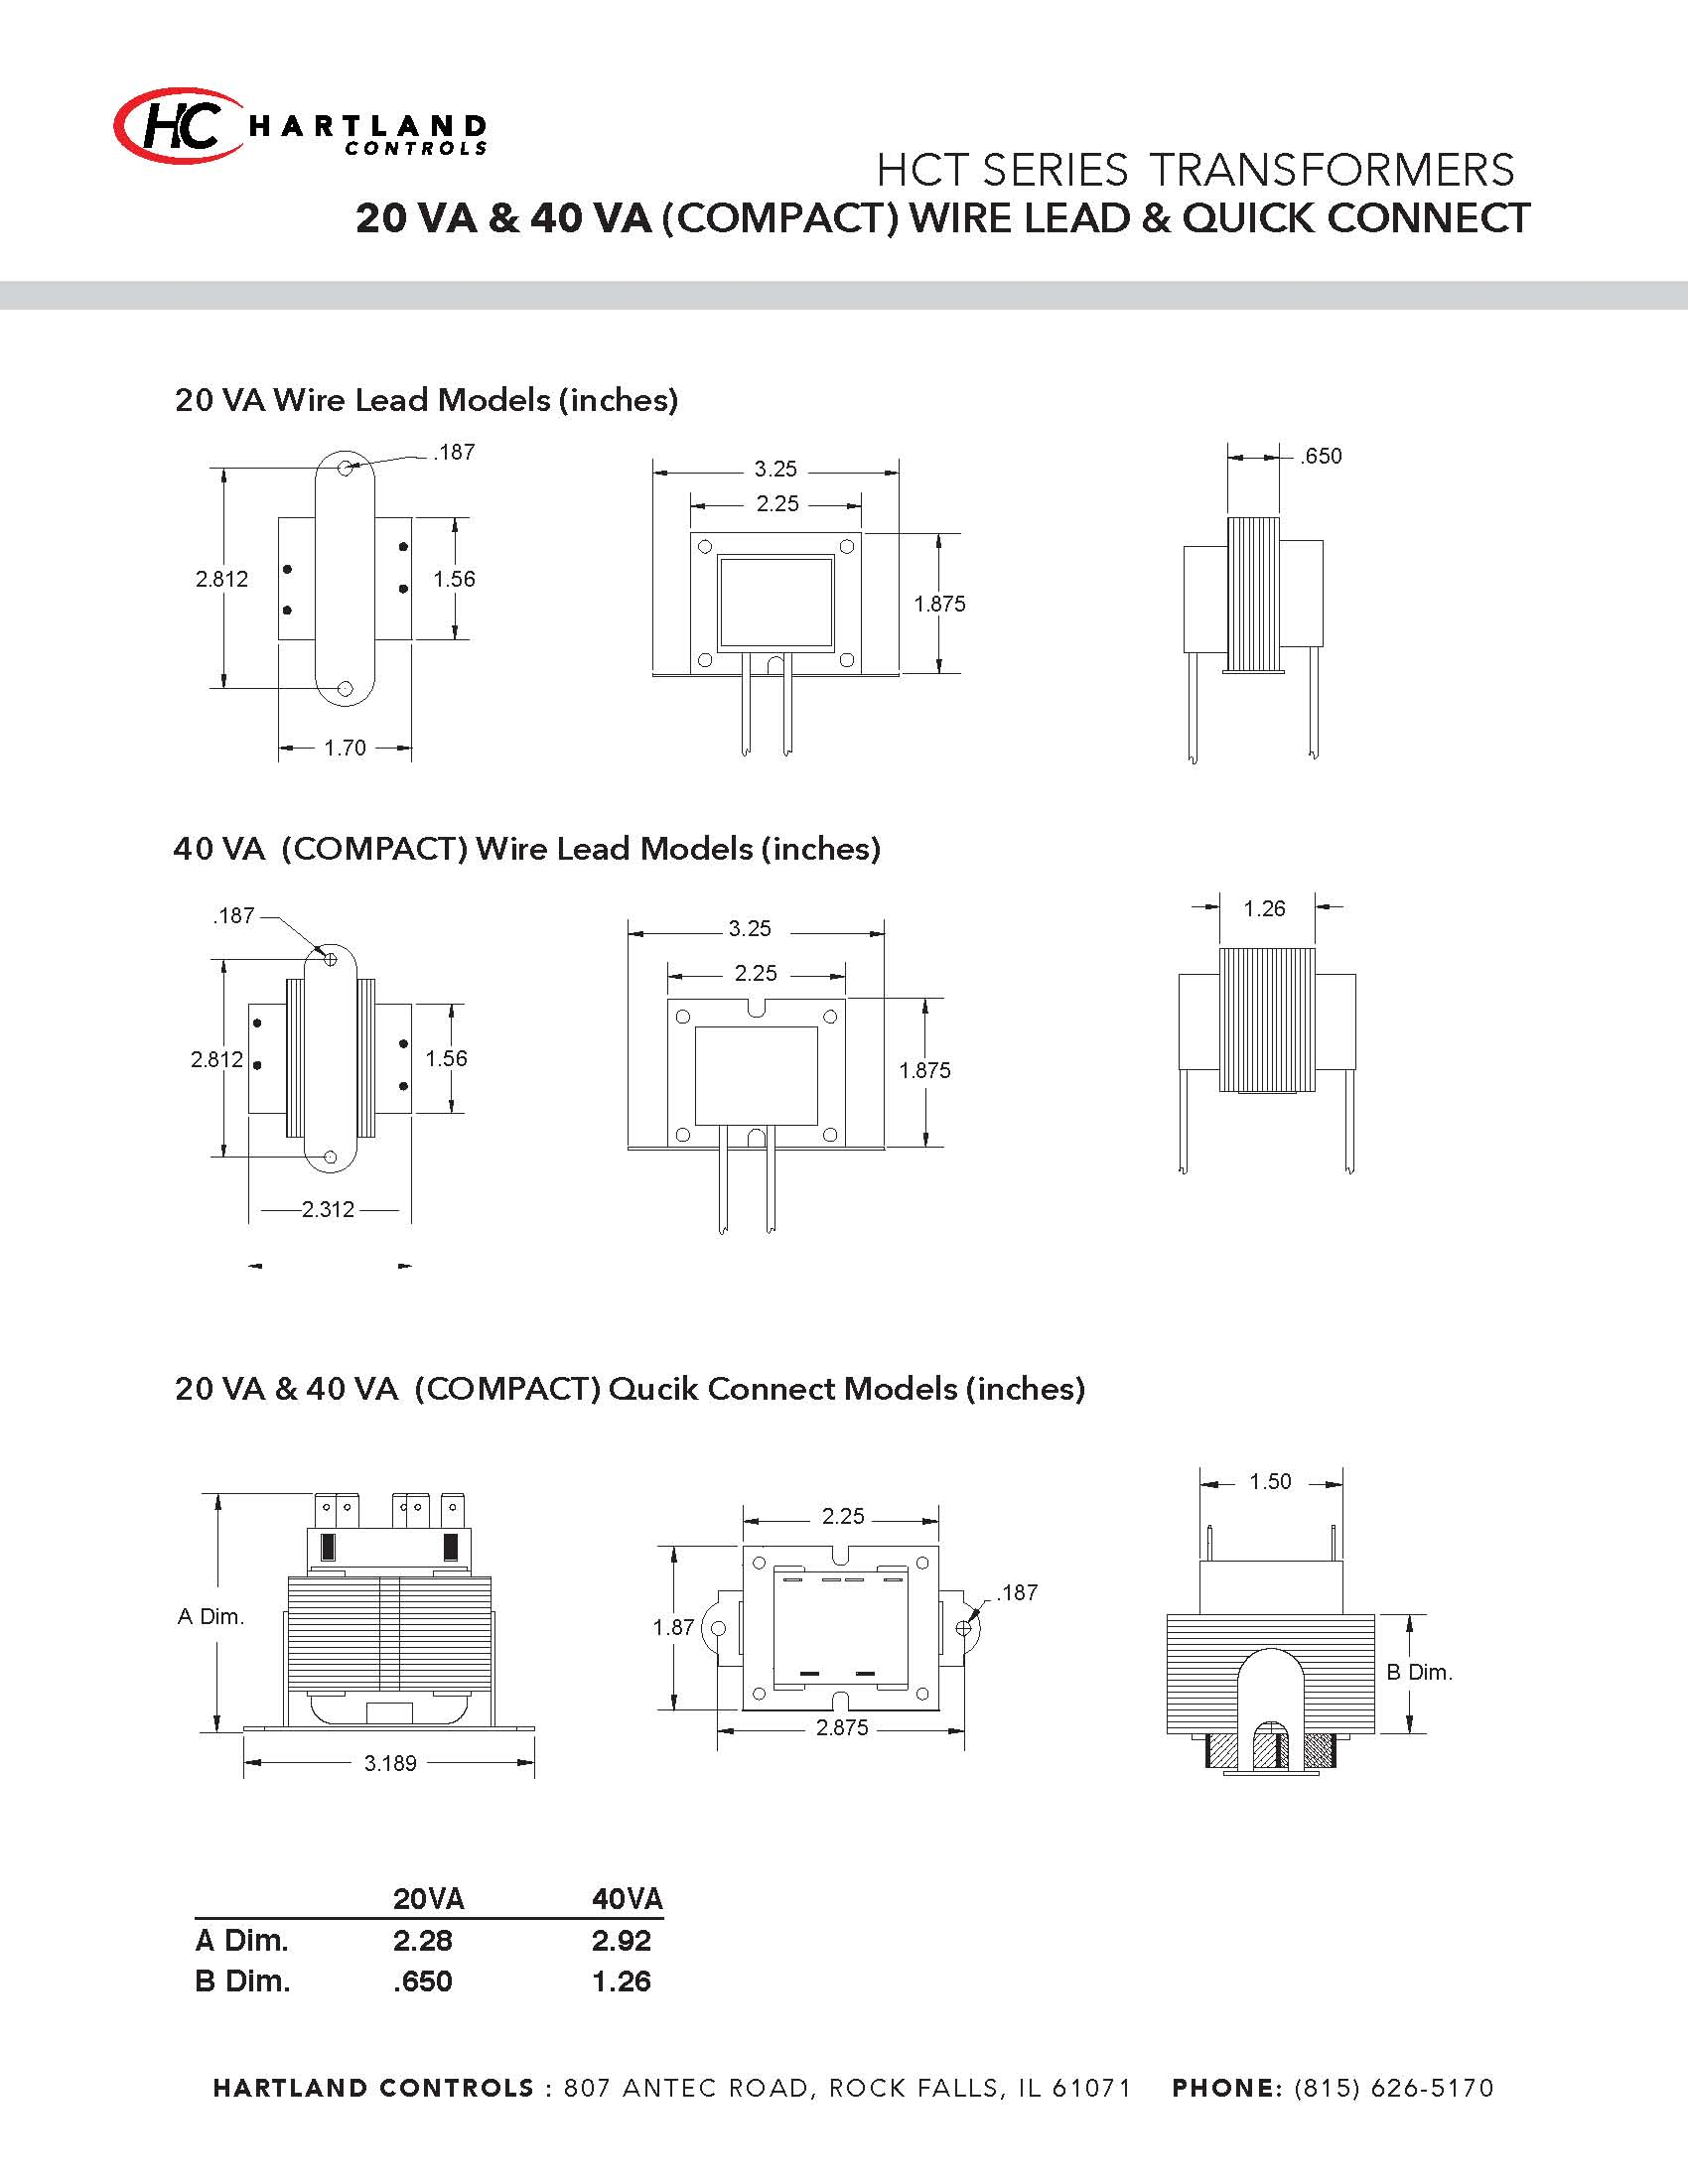 208 to 24 volt transformer wiring diagram vw citi golf radio with wire leads and quick connect universal